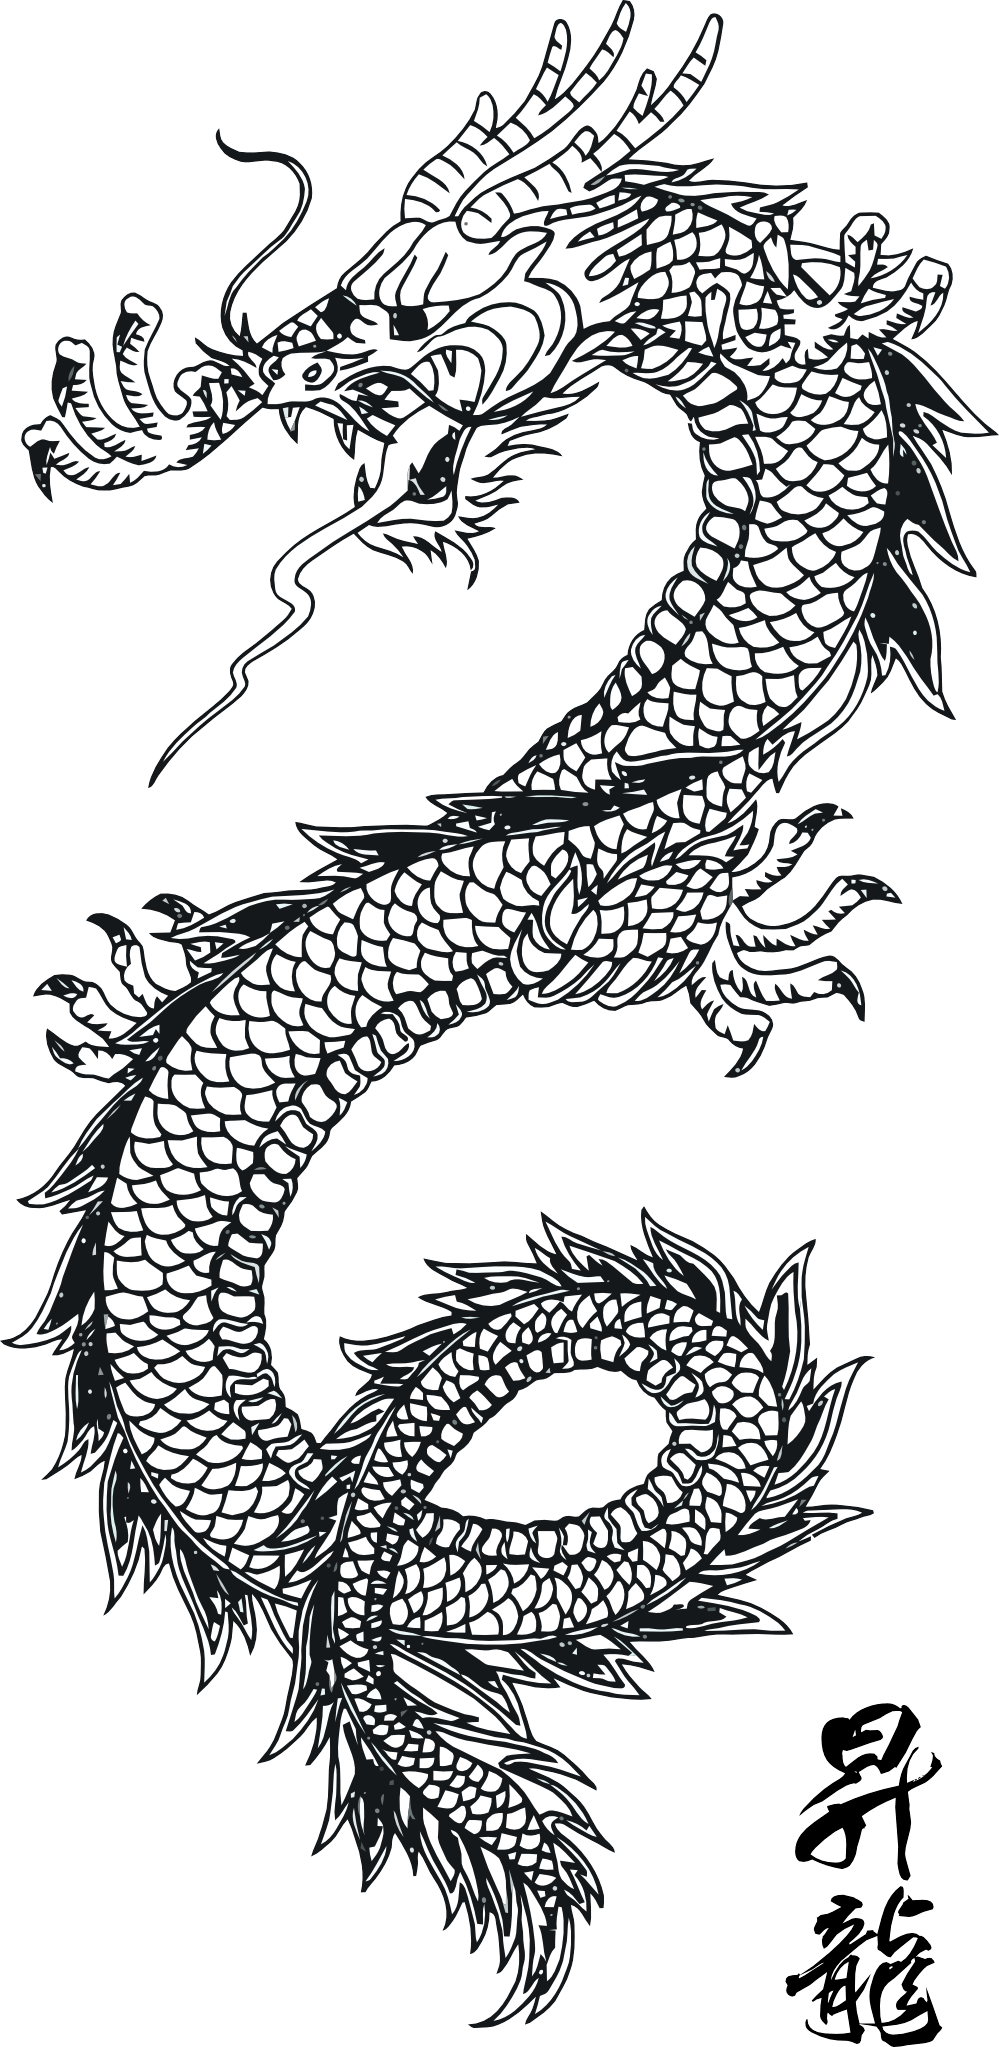 Tattoo Png Aesthetic Hd: Download Black Tattoo Dragon Png Images HQ PNG Image